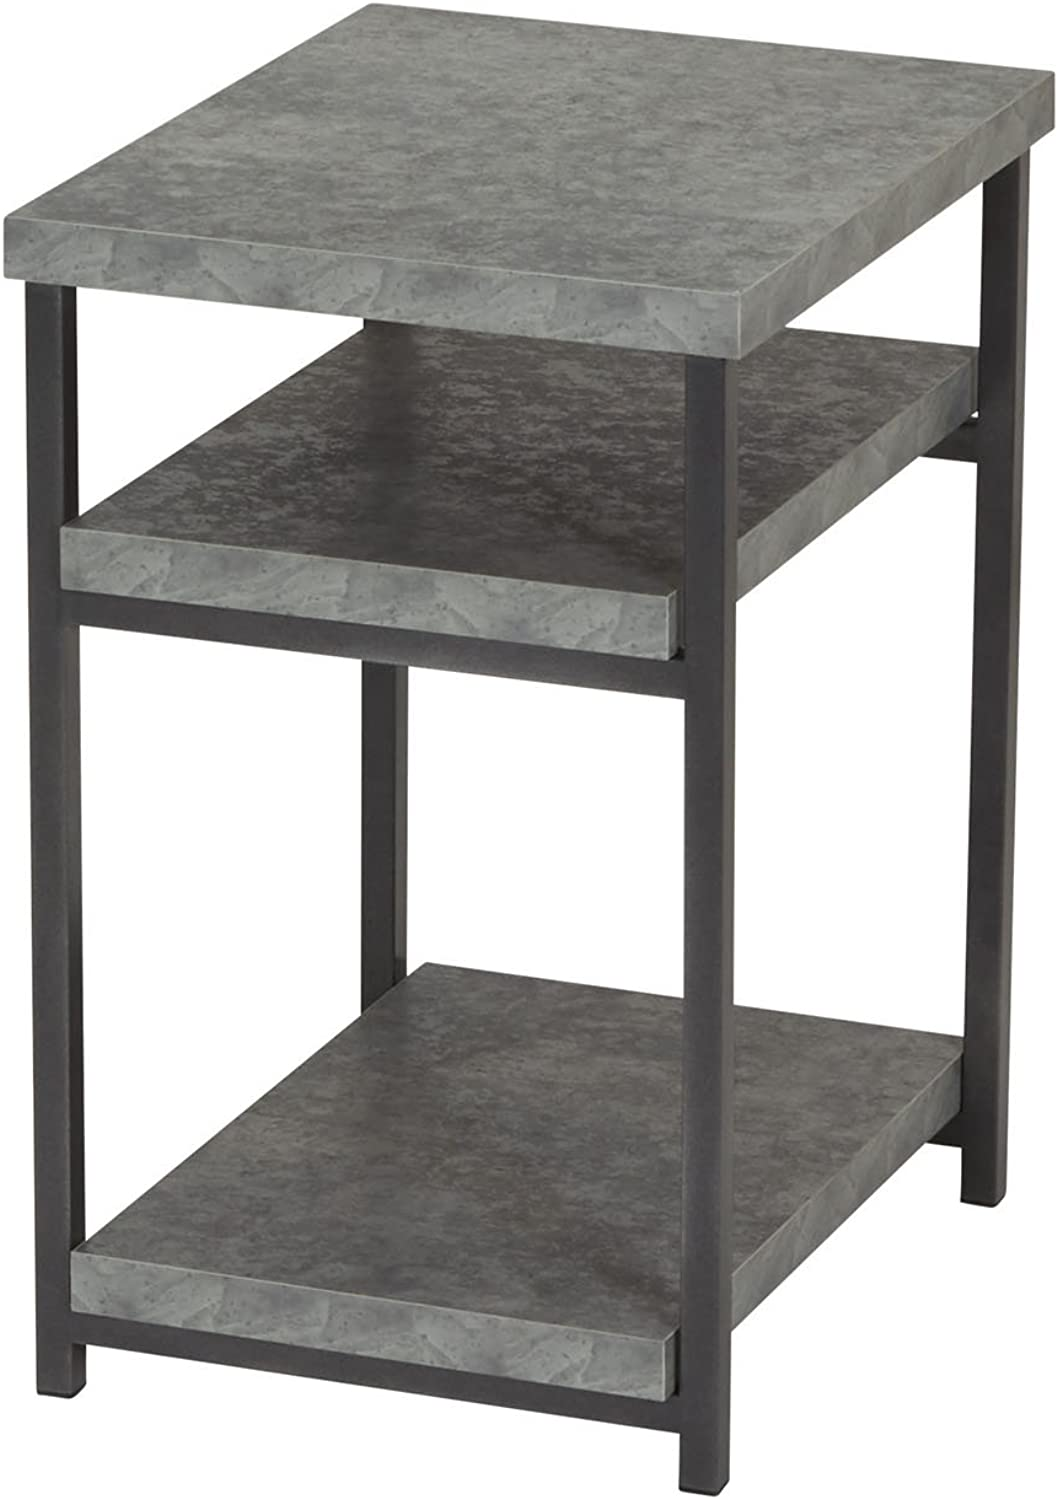 Household Essentials 8097-1 Side End Table with Shelf for Storage, Faux Slate Concrete